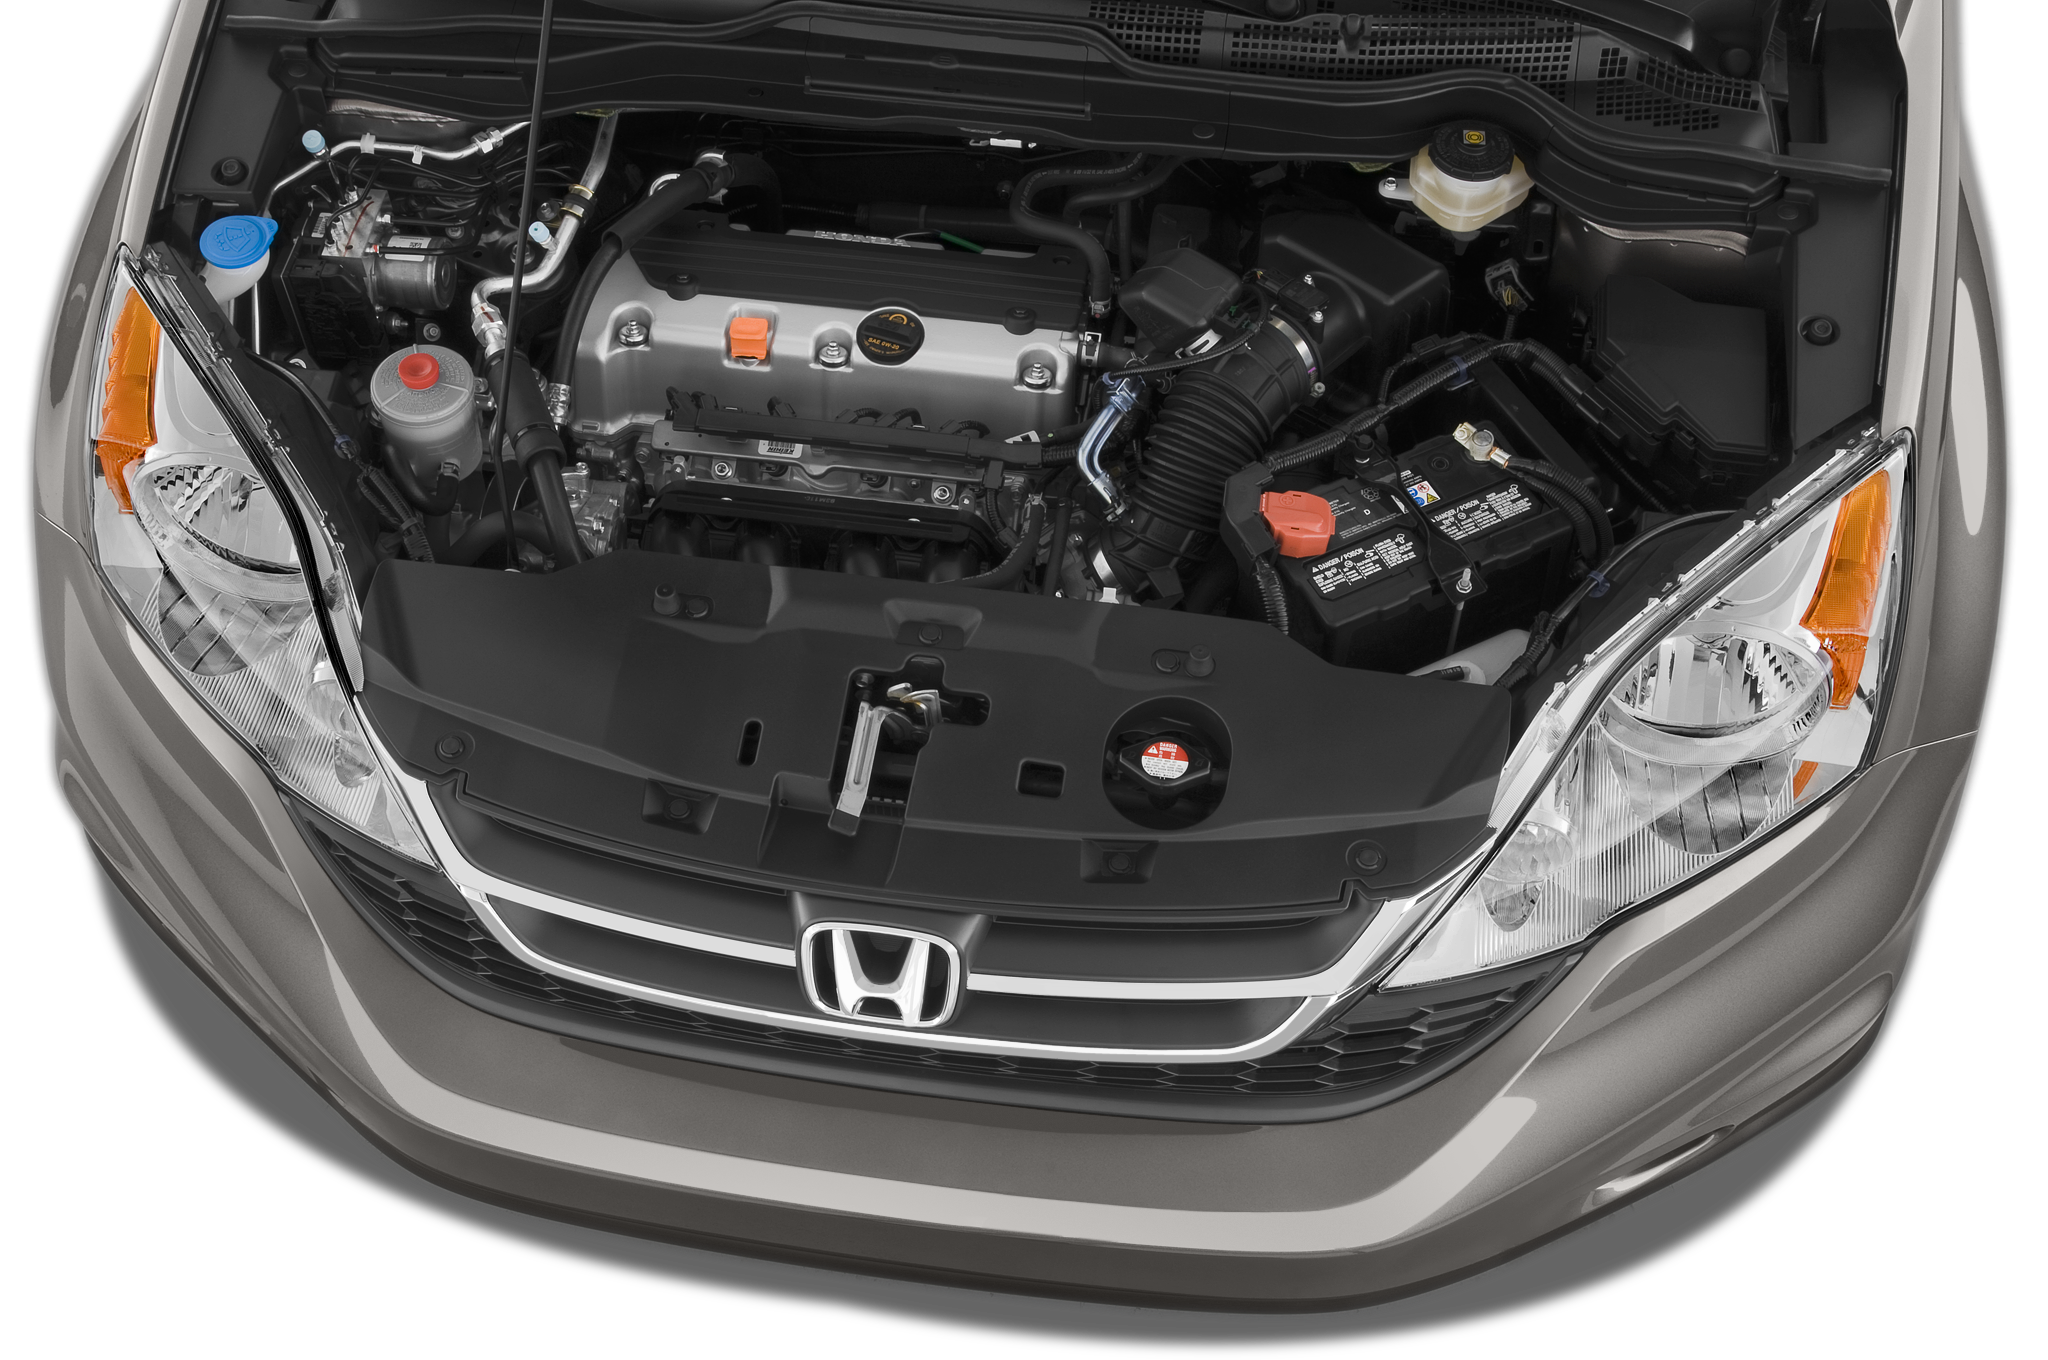 2010 Honda Cr V Gains More Power Mild Facelift